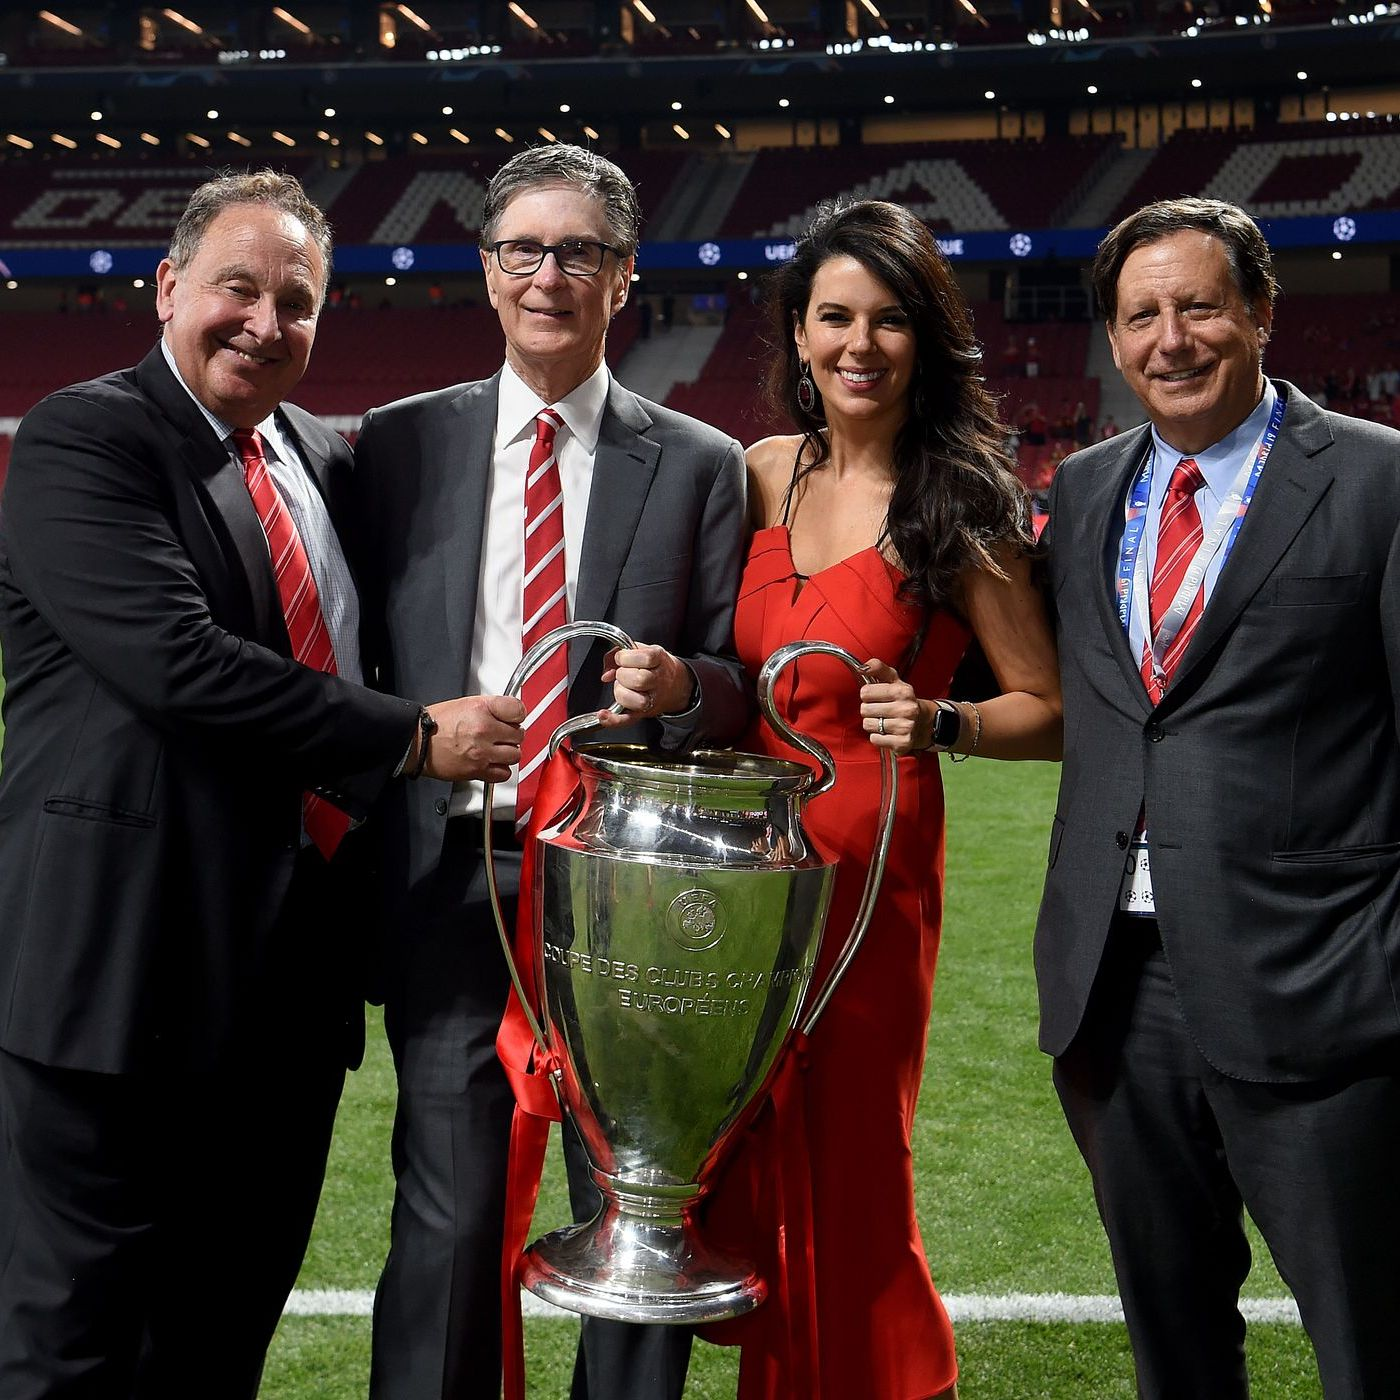 Boston to Liverpool | Inside story on how FSG and John W Henry set the Reds on path to domination